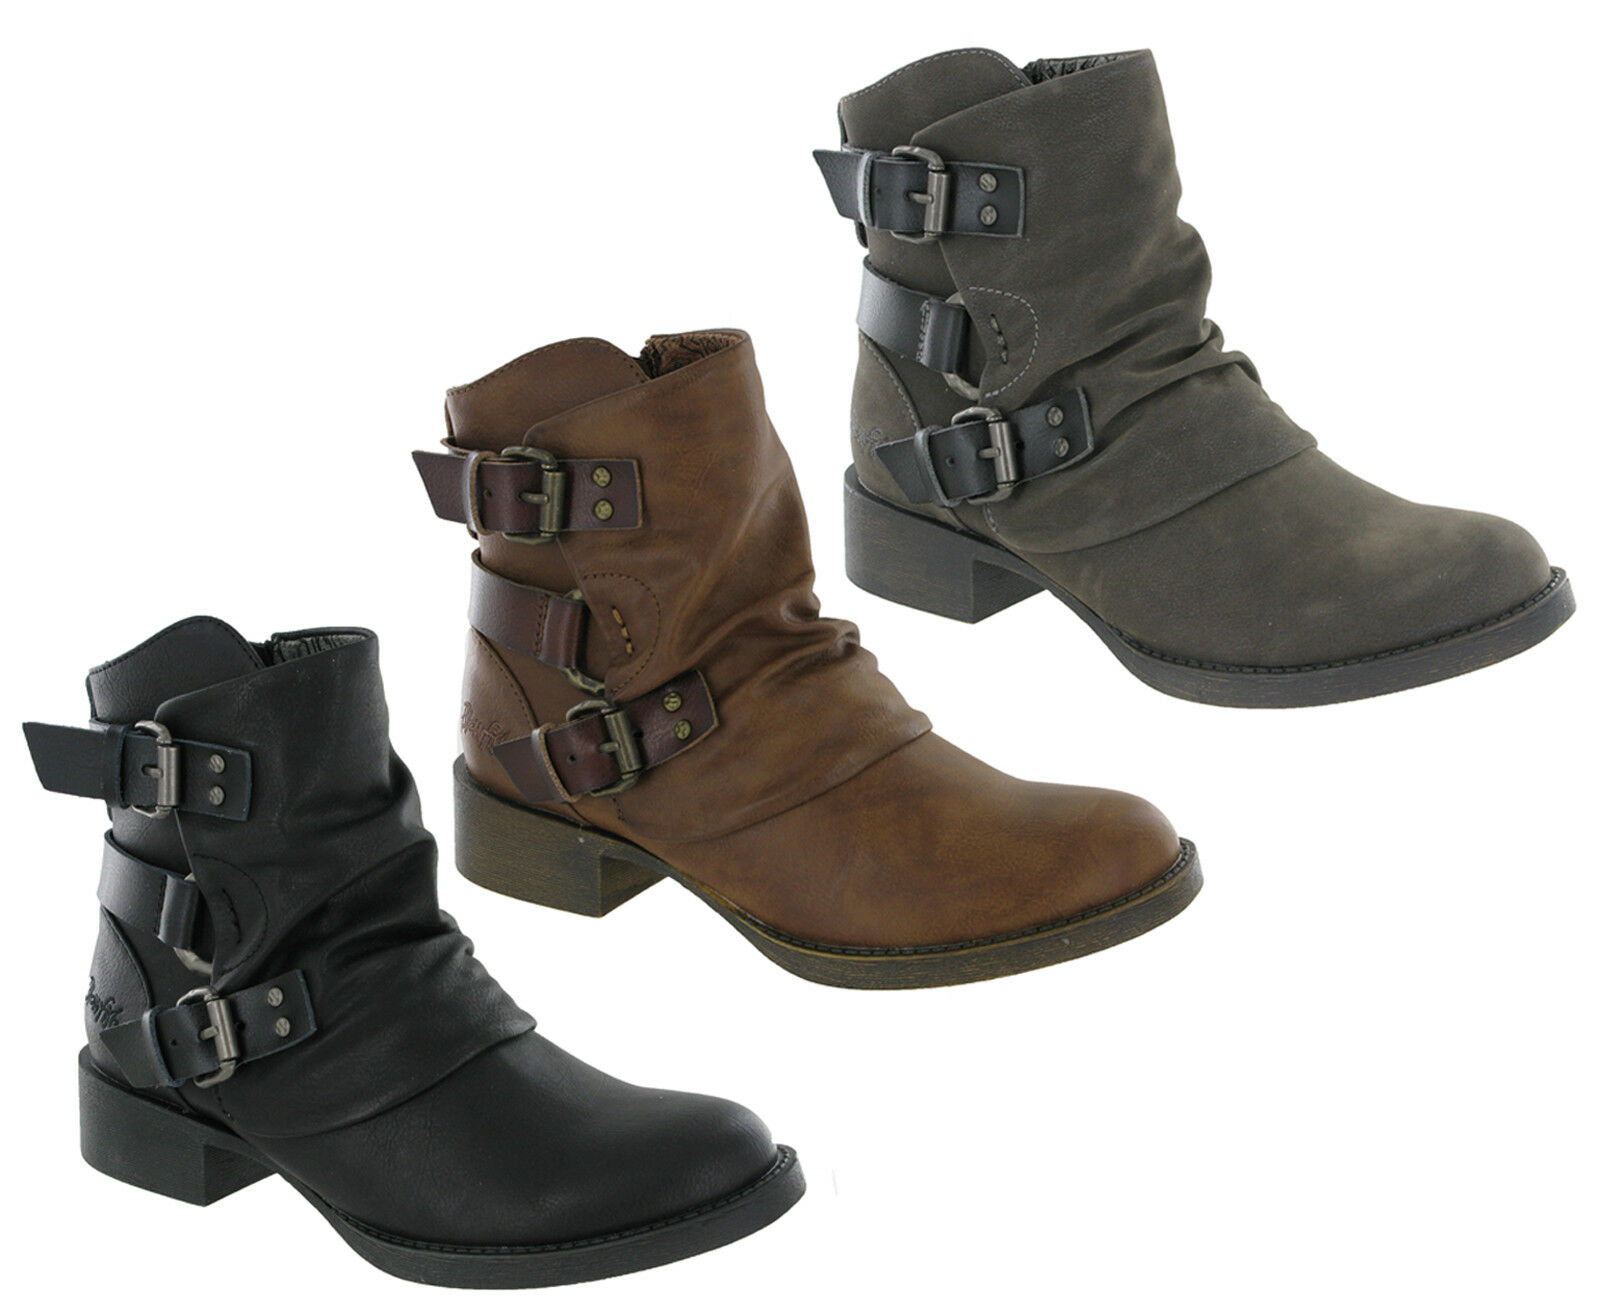 Blowfish Malibu Korrekt Ankle Biker Boots Boots Boots Buckle Detail Zip Up Fashion shoes 699c94